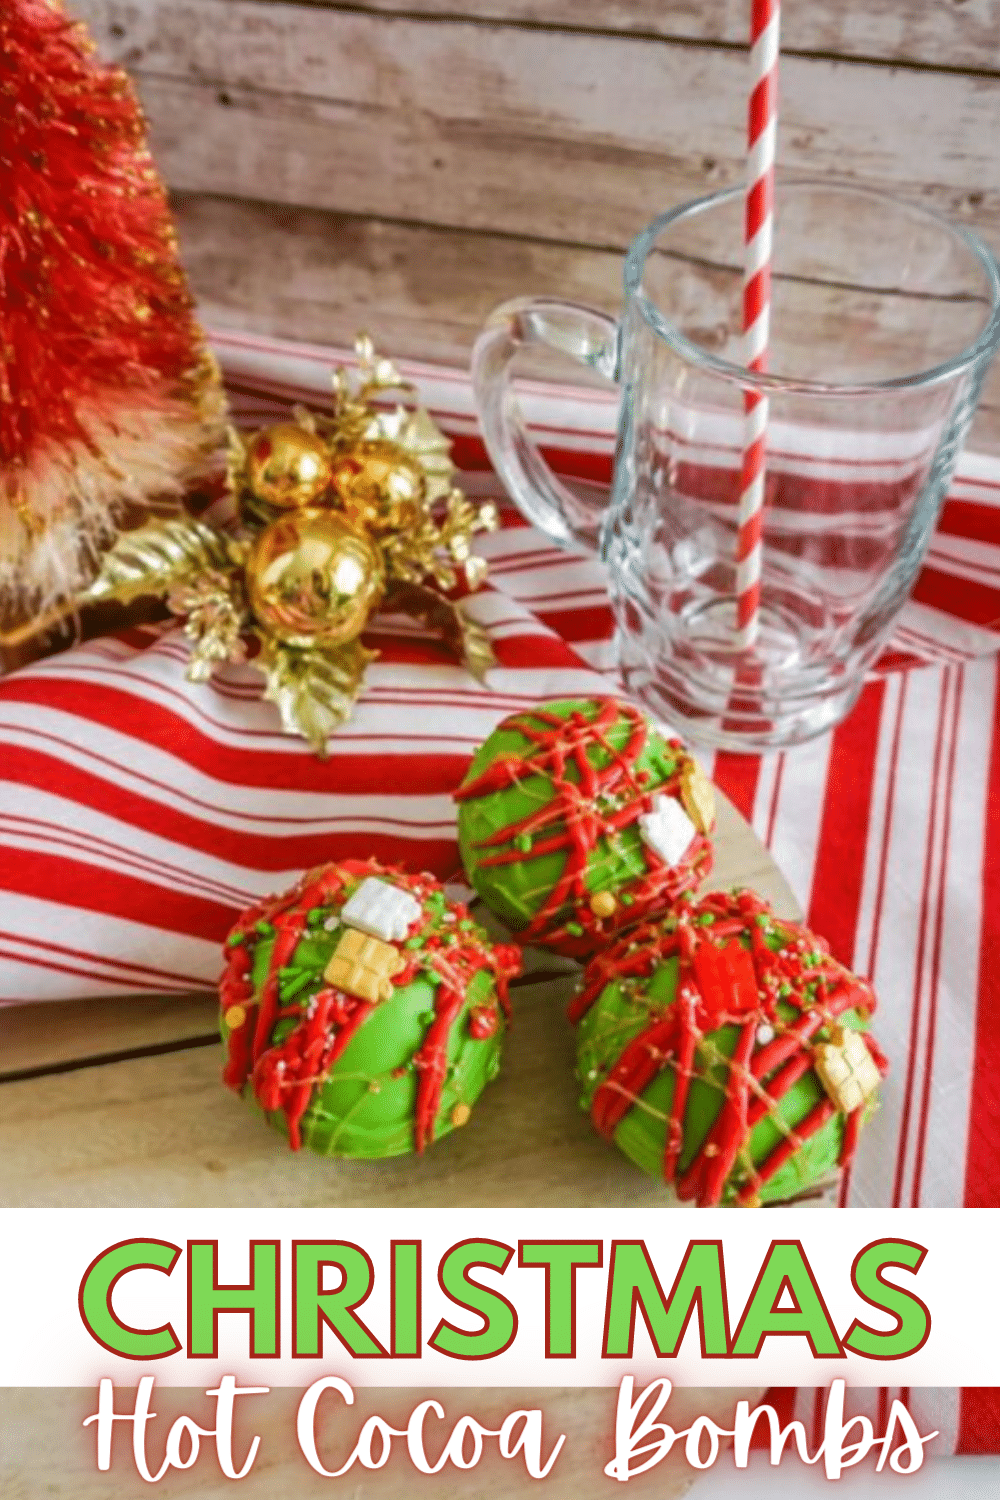 With just 6 simple ingredients needed, you're going to love the ease and flavor of these Christmas Hot Cocoa Bombs! #hotcocoa #hotcocoabombs #hotchocolate #christmas via @wondermomwannab